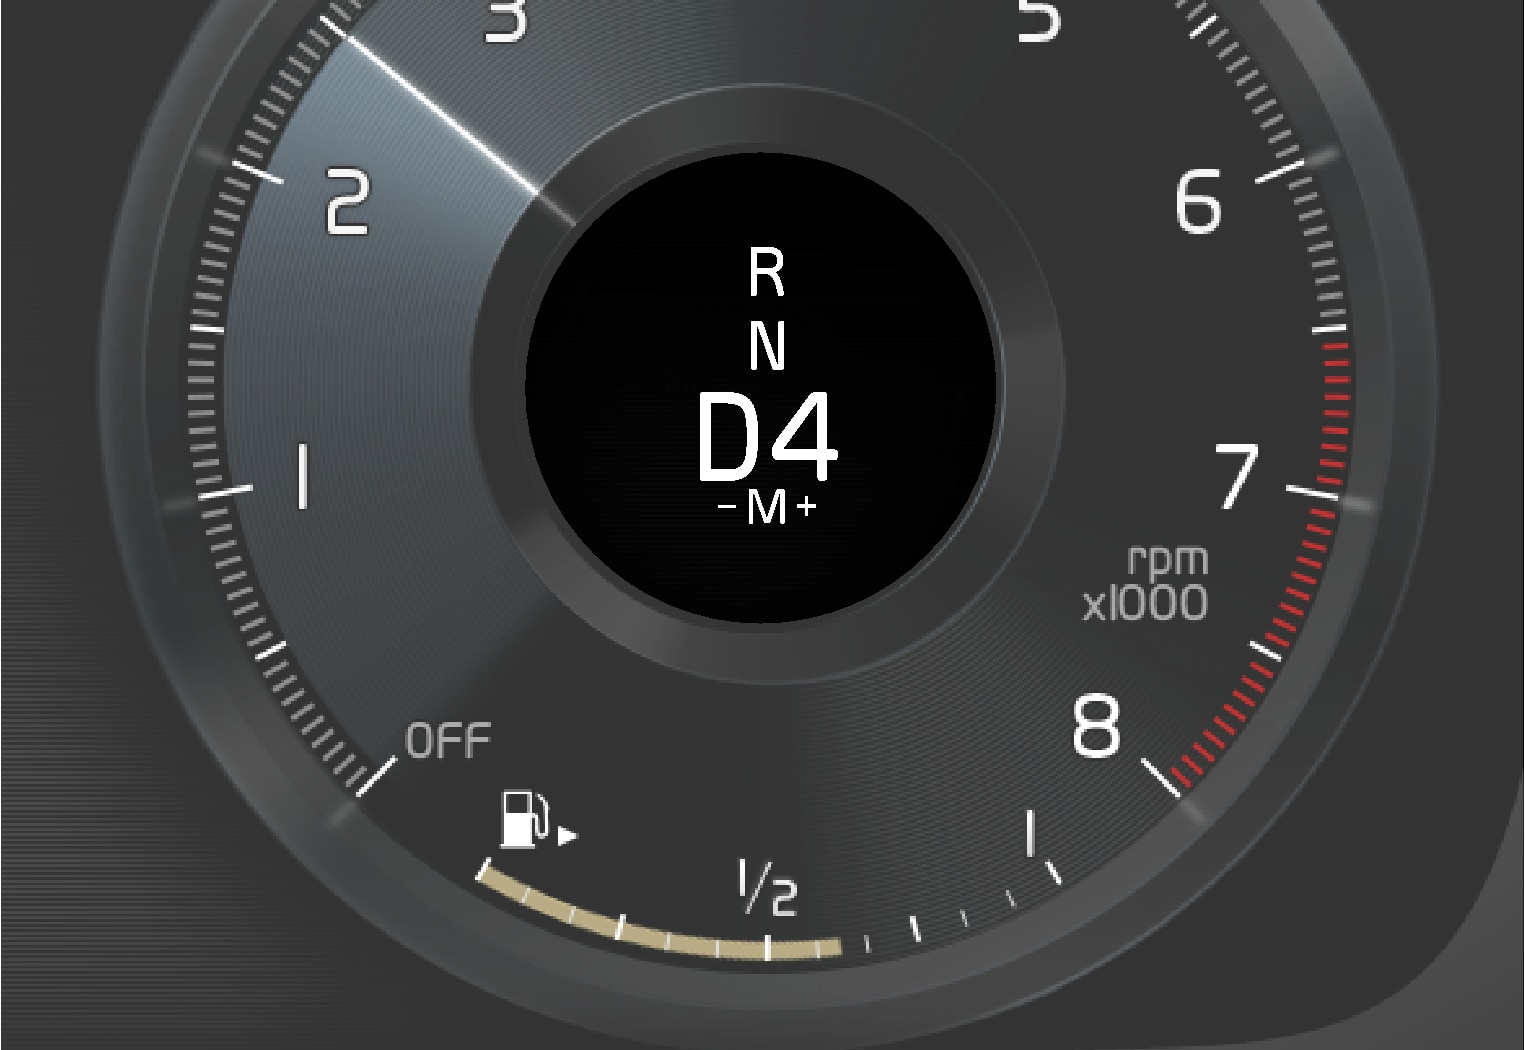 P5P6-1917-8G-Gear shifting with paddles, information in driver display